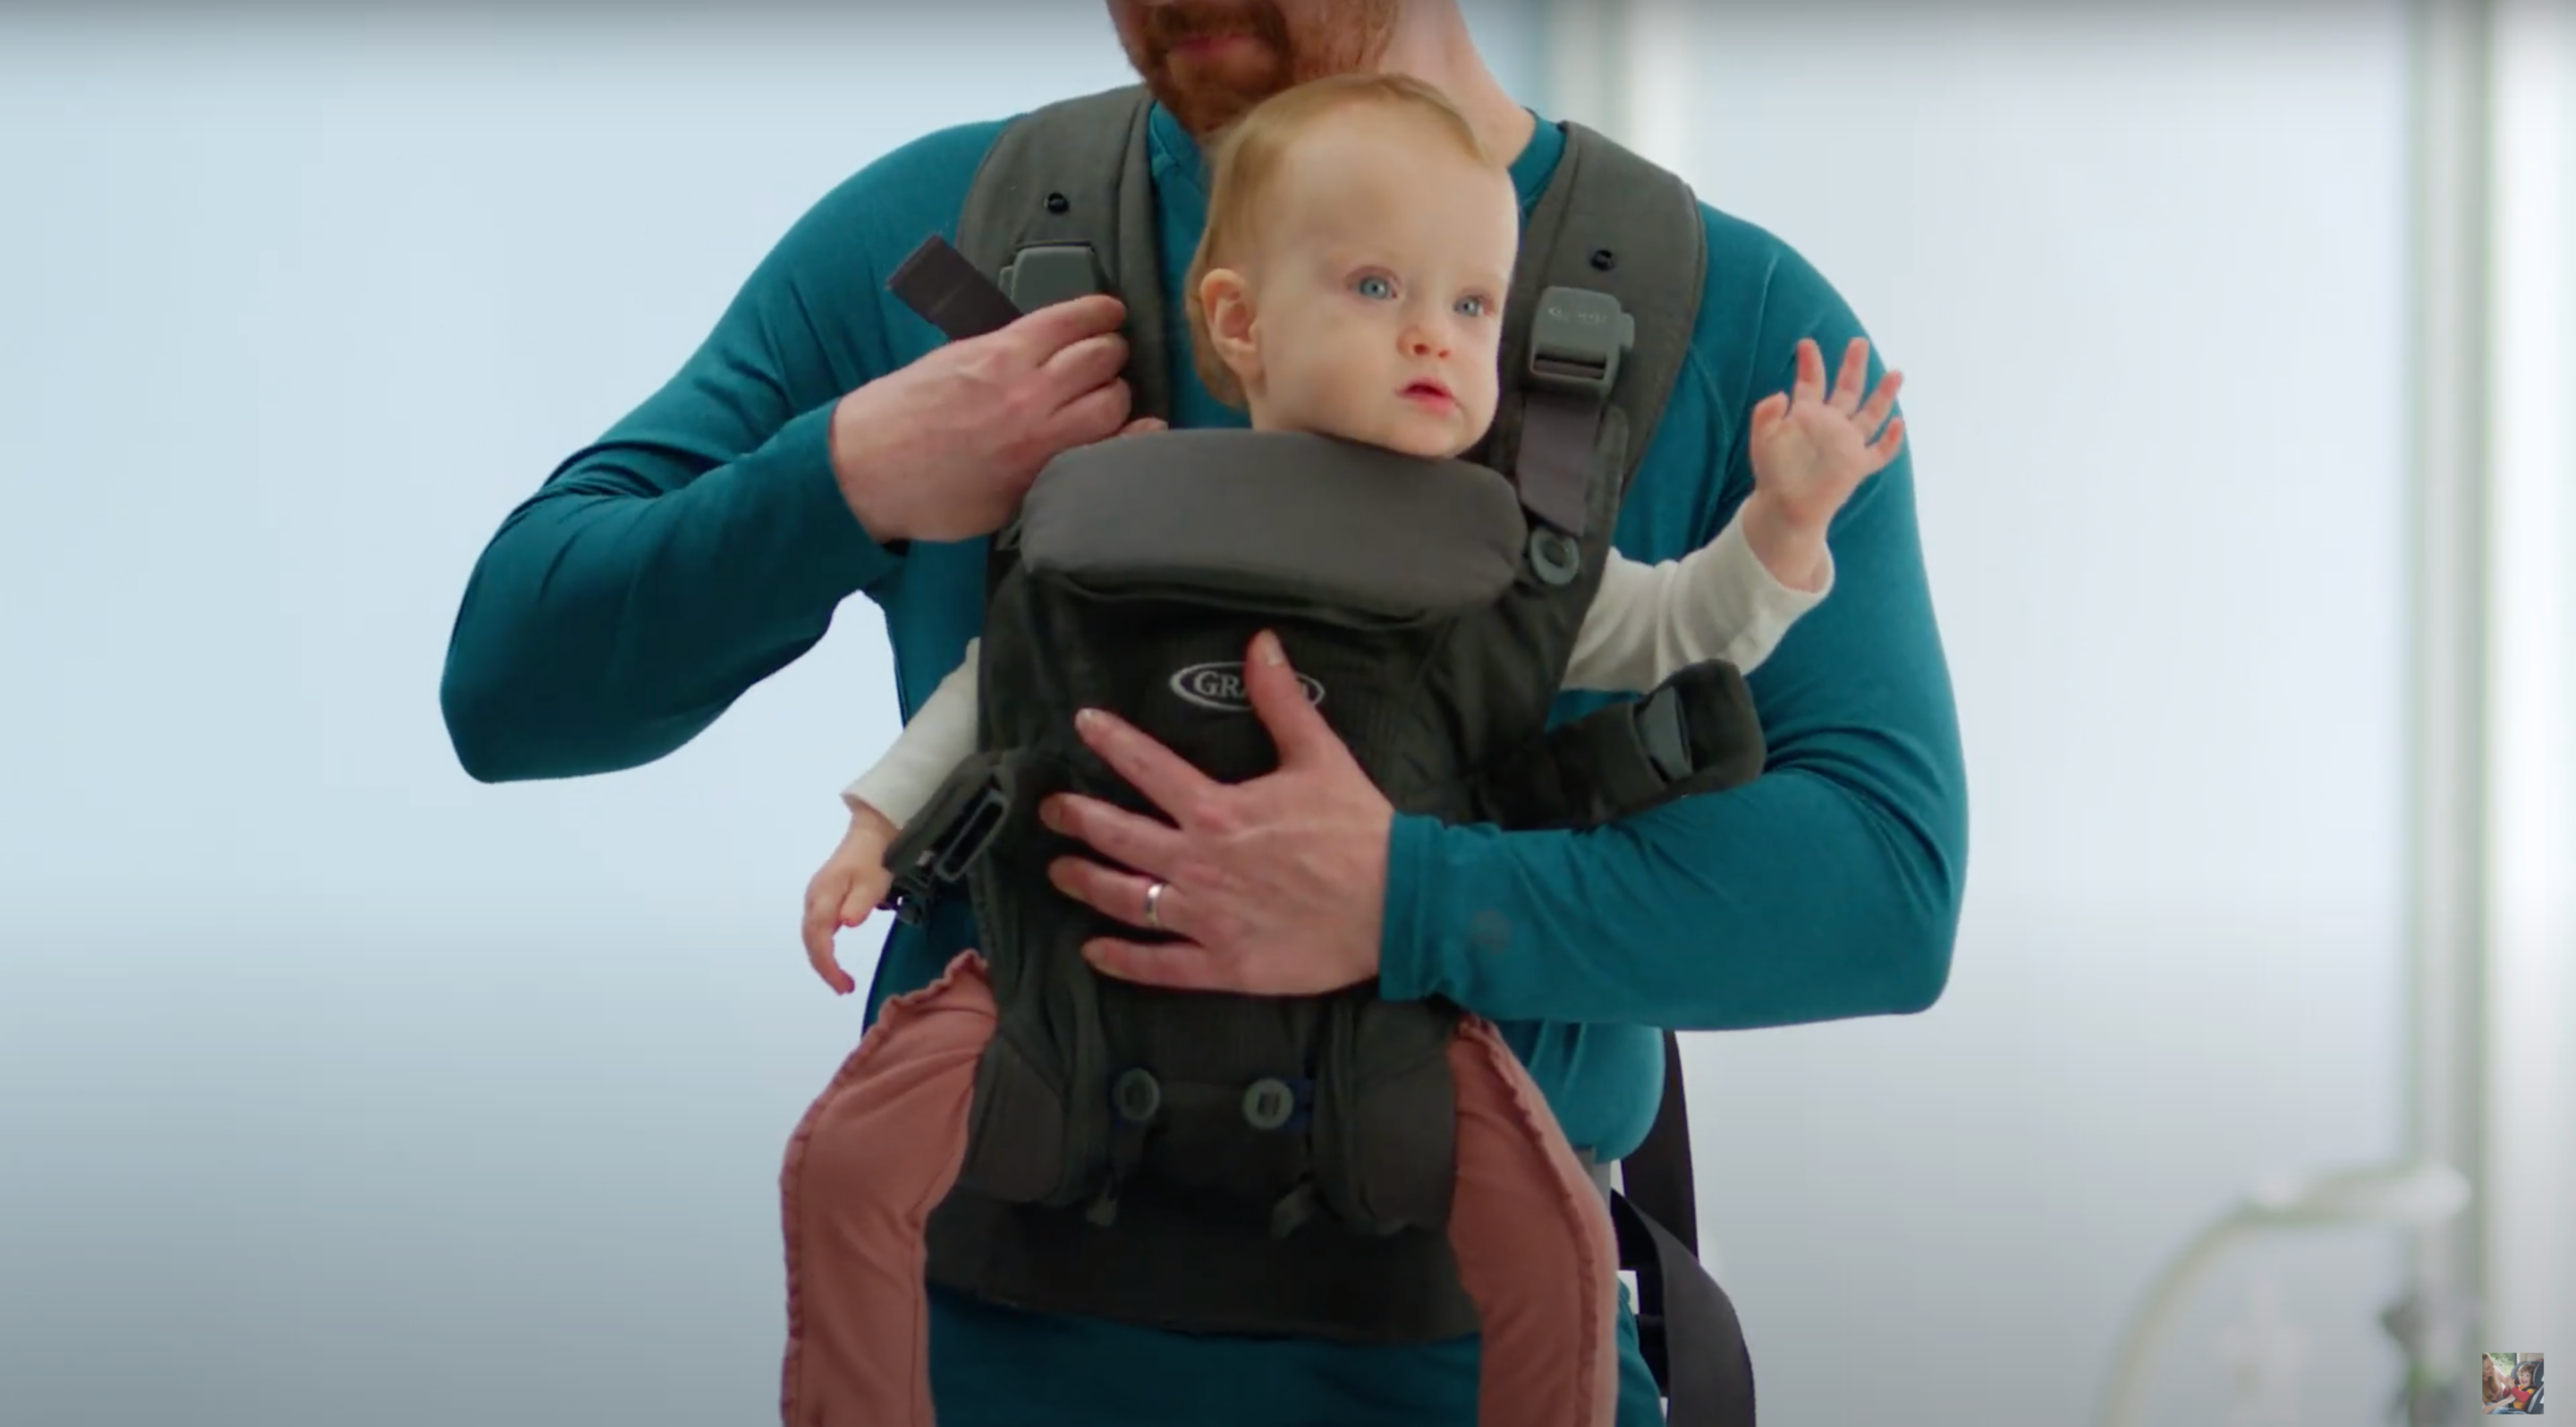 baby being secured inside carrier